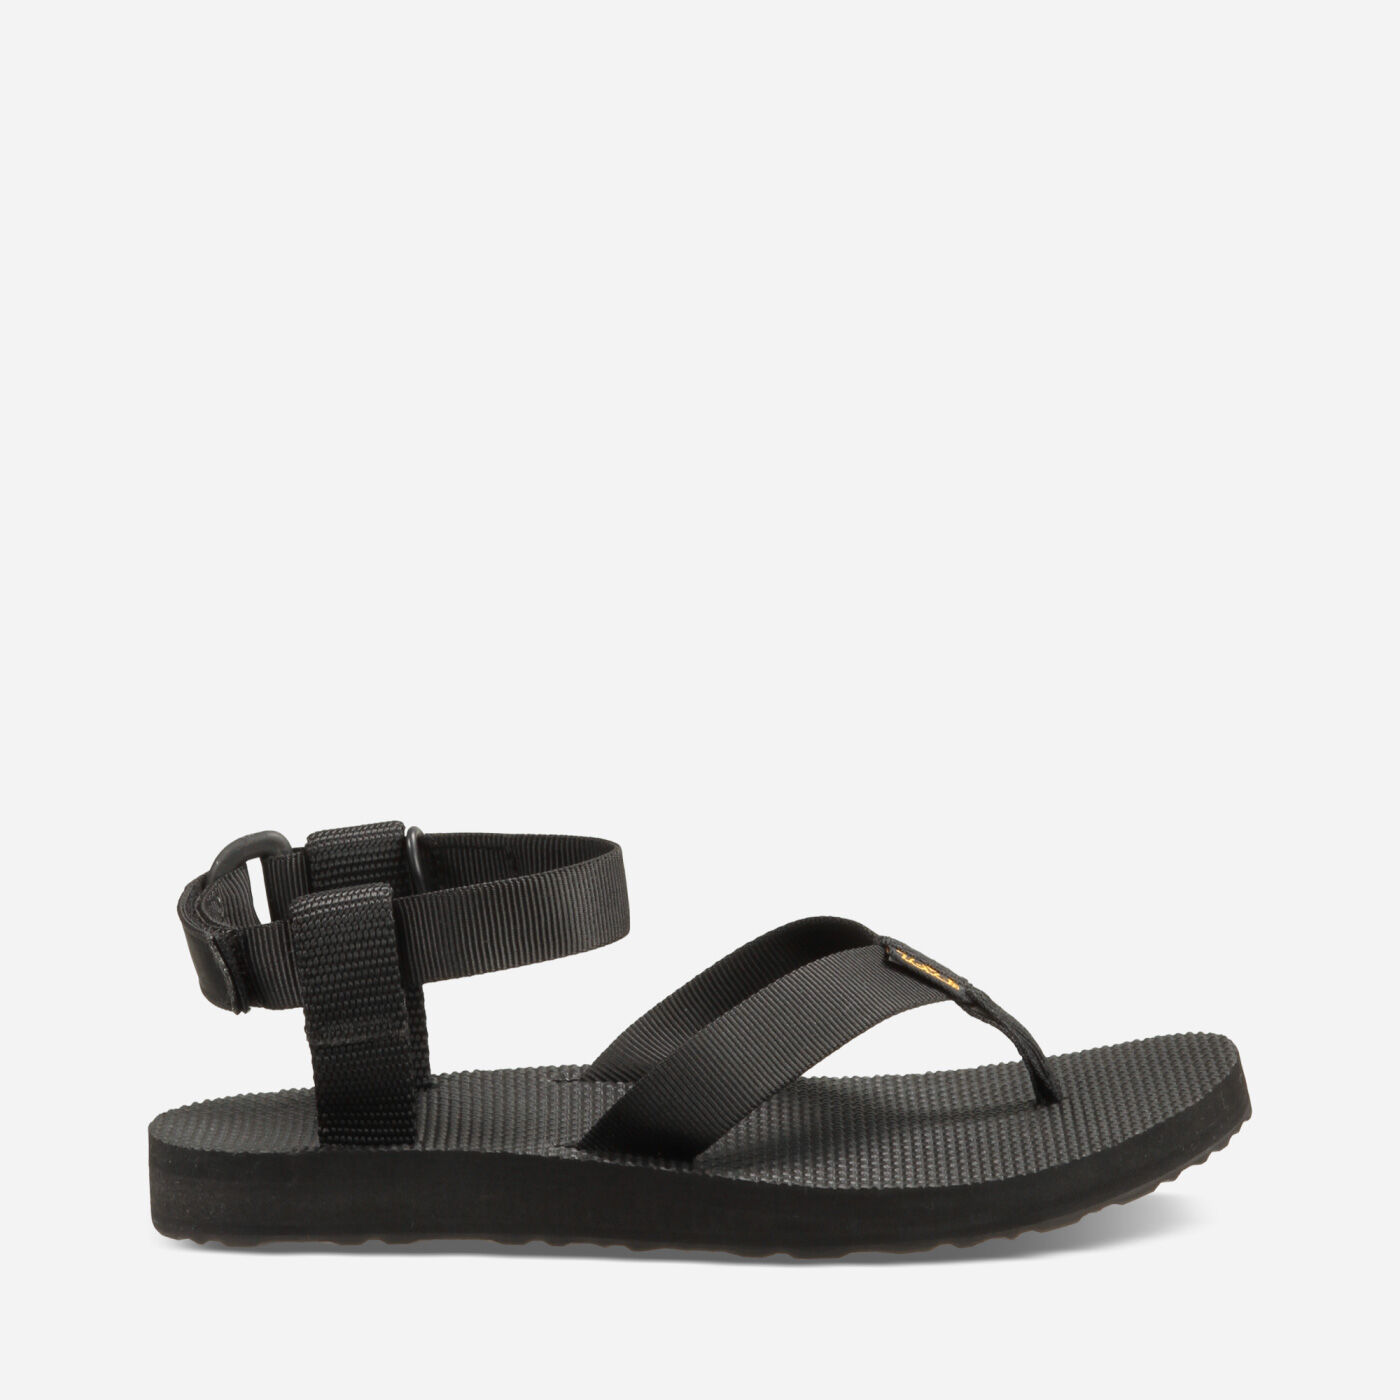 Black sandals with straps - Black Sandals With Straps 4